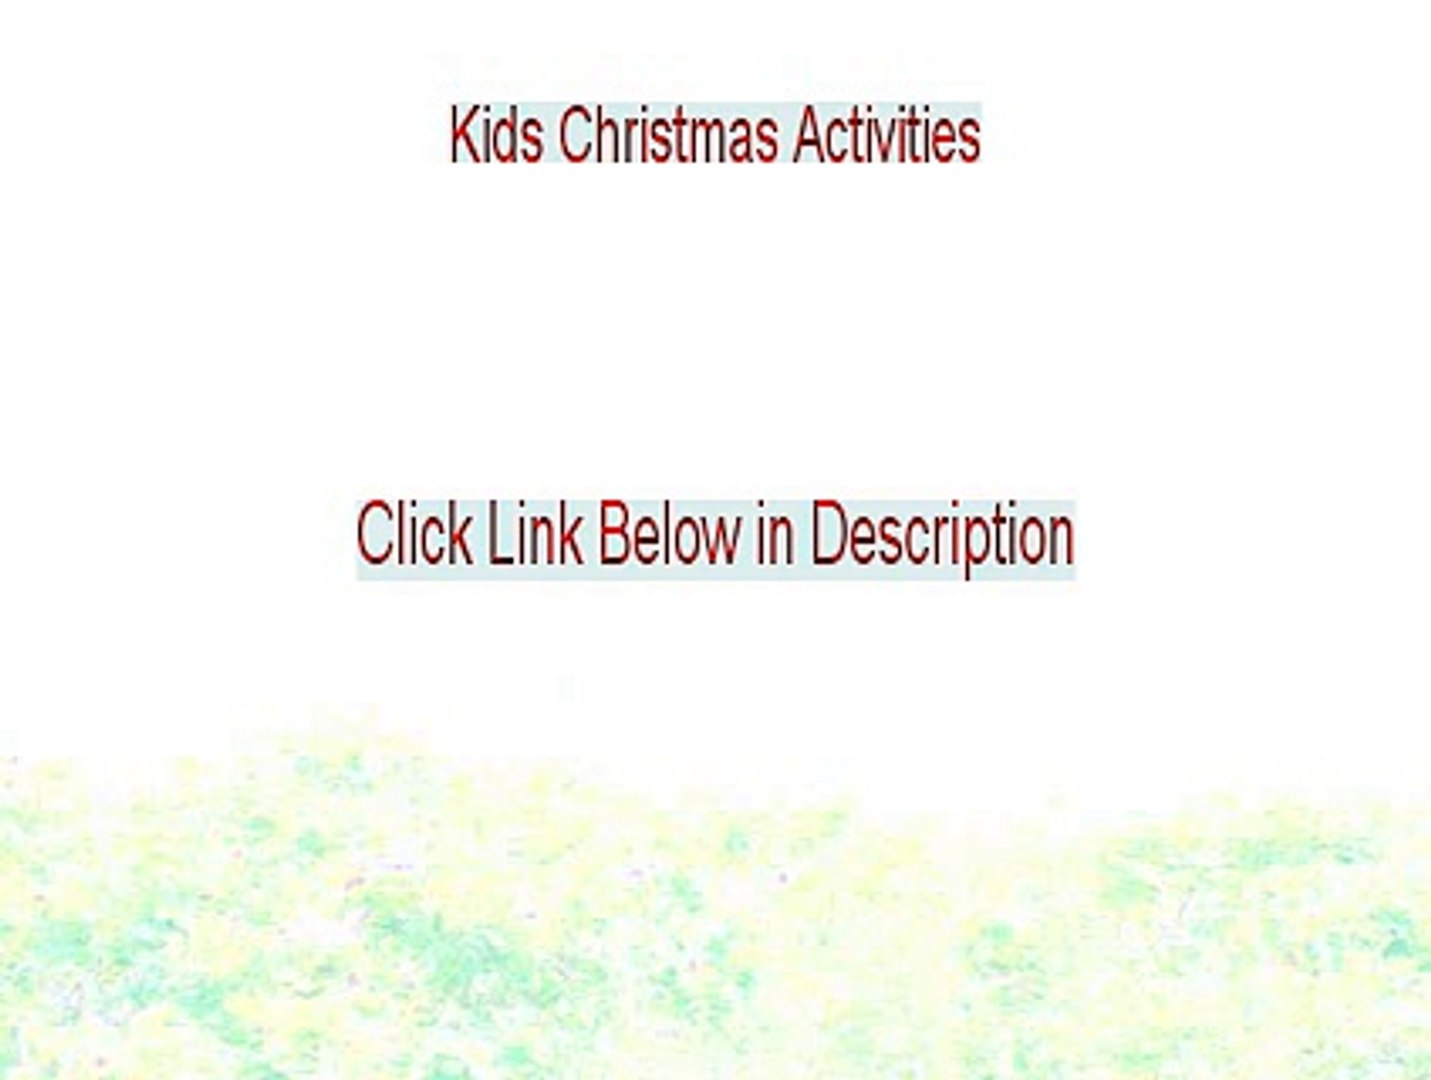 Kids Christmas Activities Free Review (Legit Review)